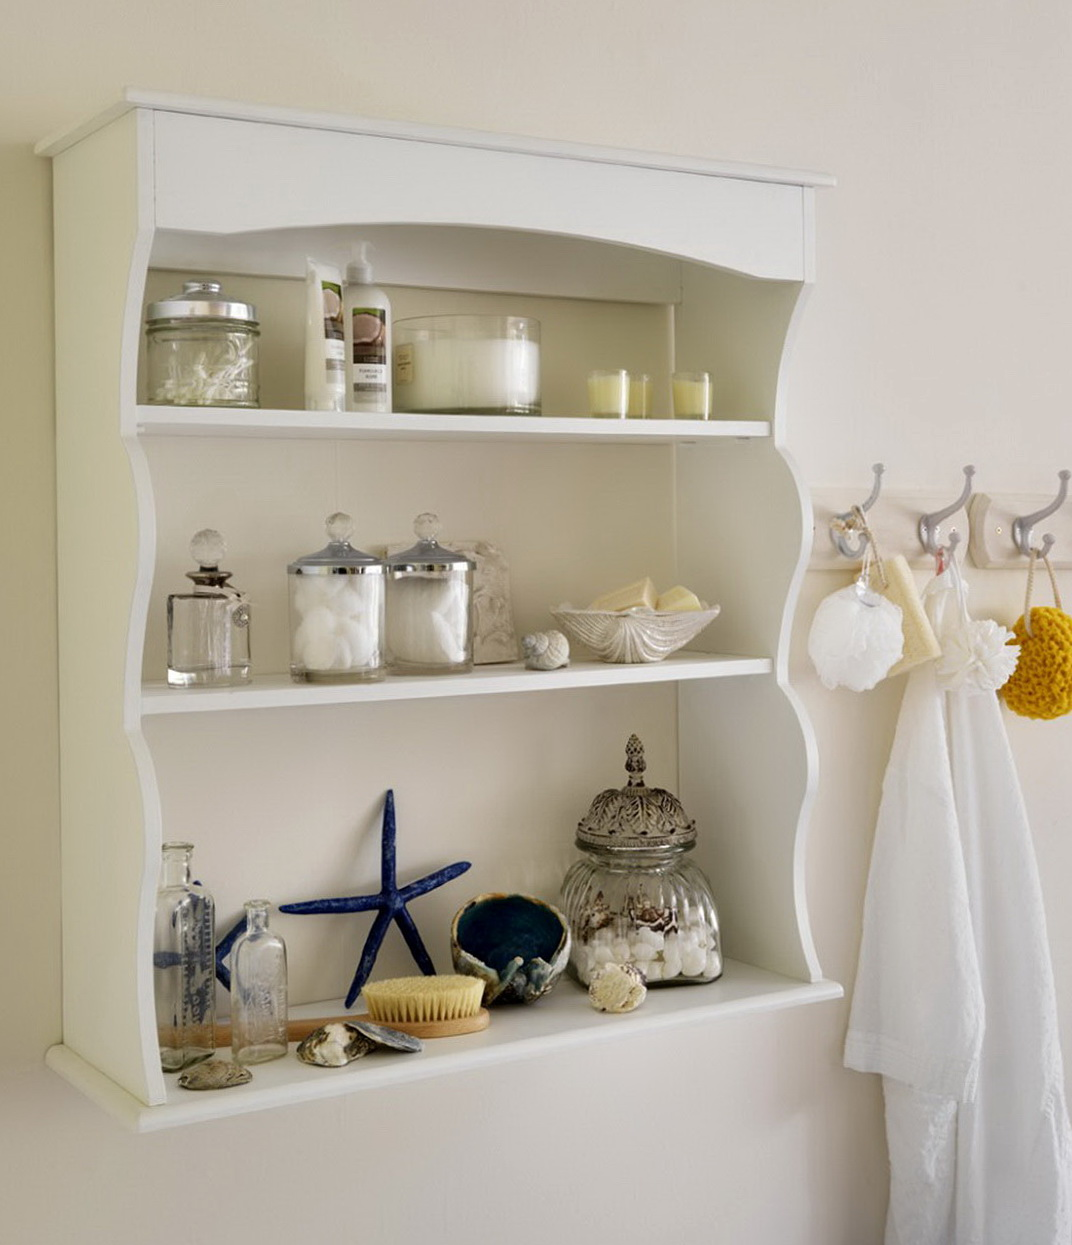 Decorative Wall Shelves For Kitchen